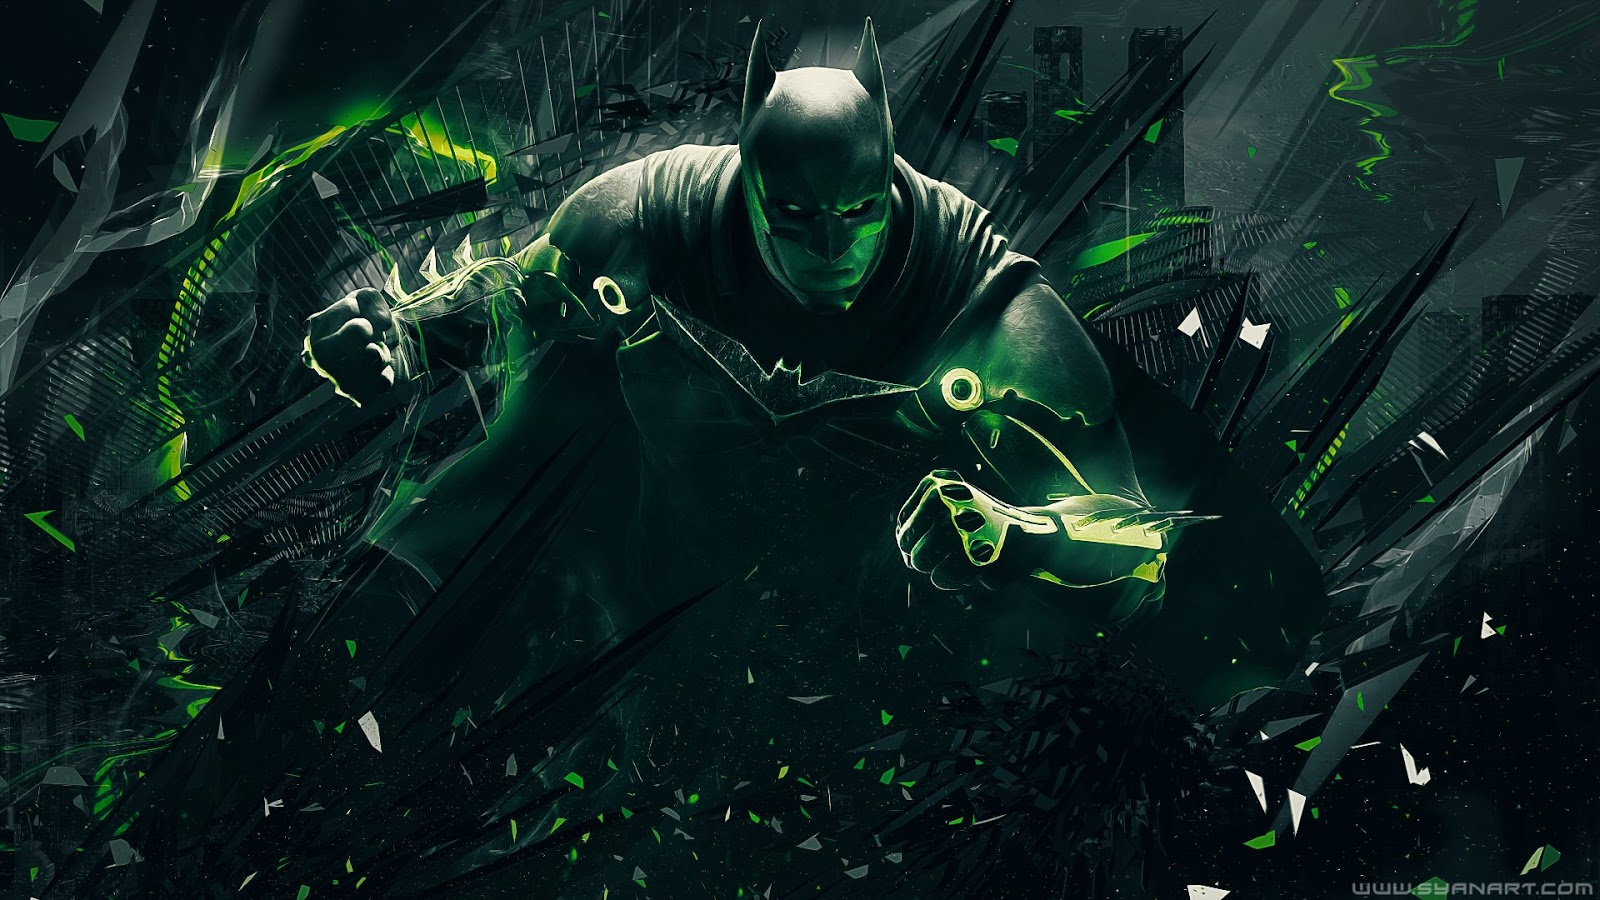 Download Injustice 2 Hd Wallpapers 1920x1080 Read Games